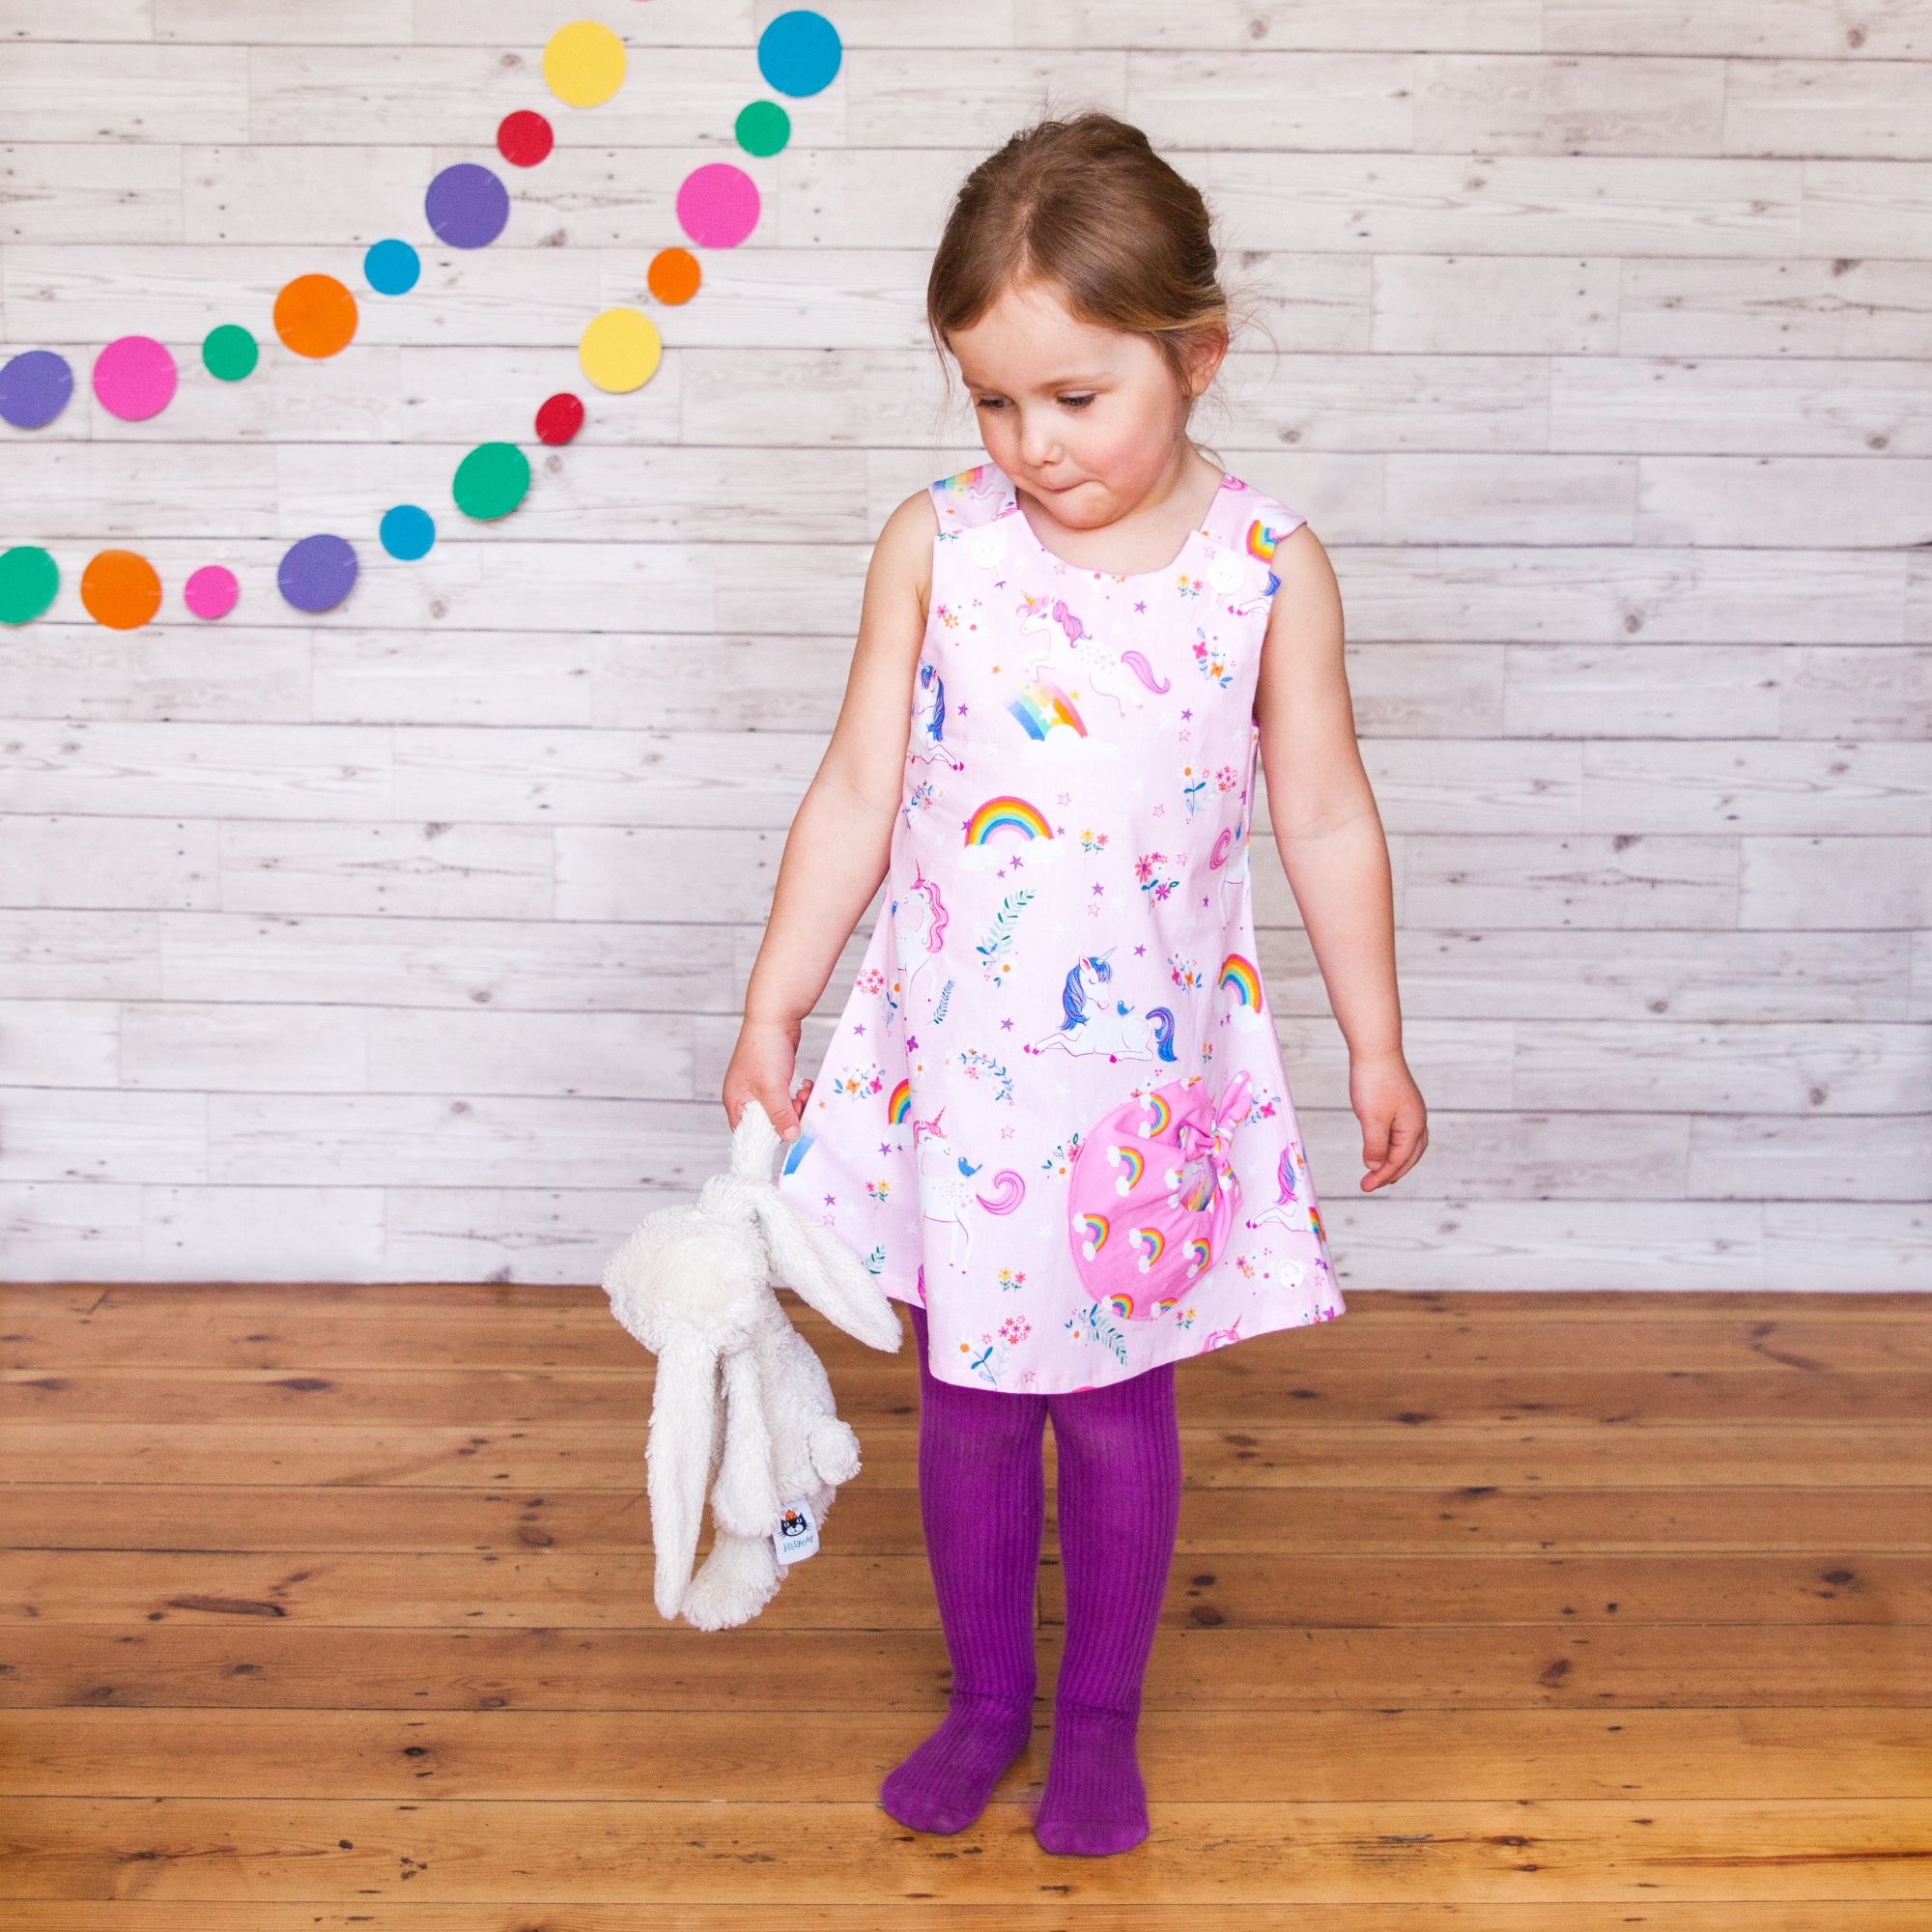 ad5c3c090 Welcome to Lily & Giraffe, the home of handmade children's clothing ...